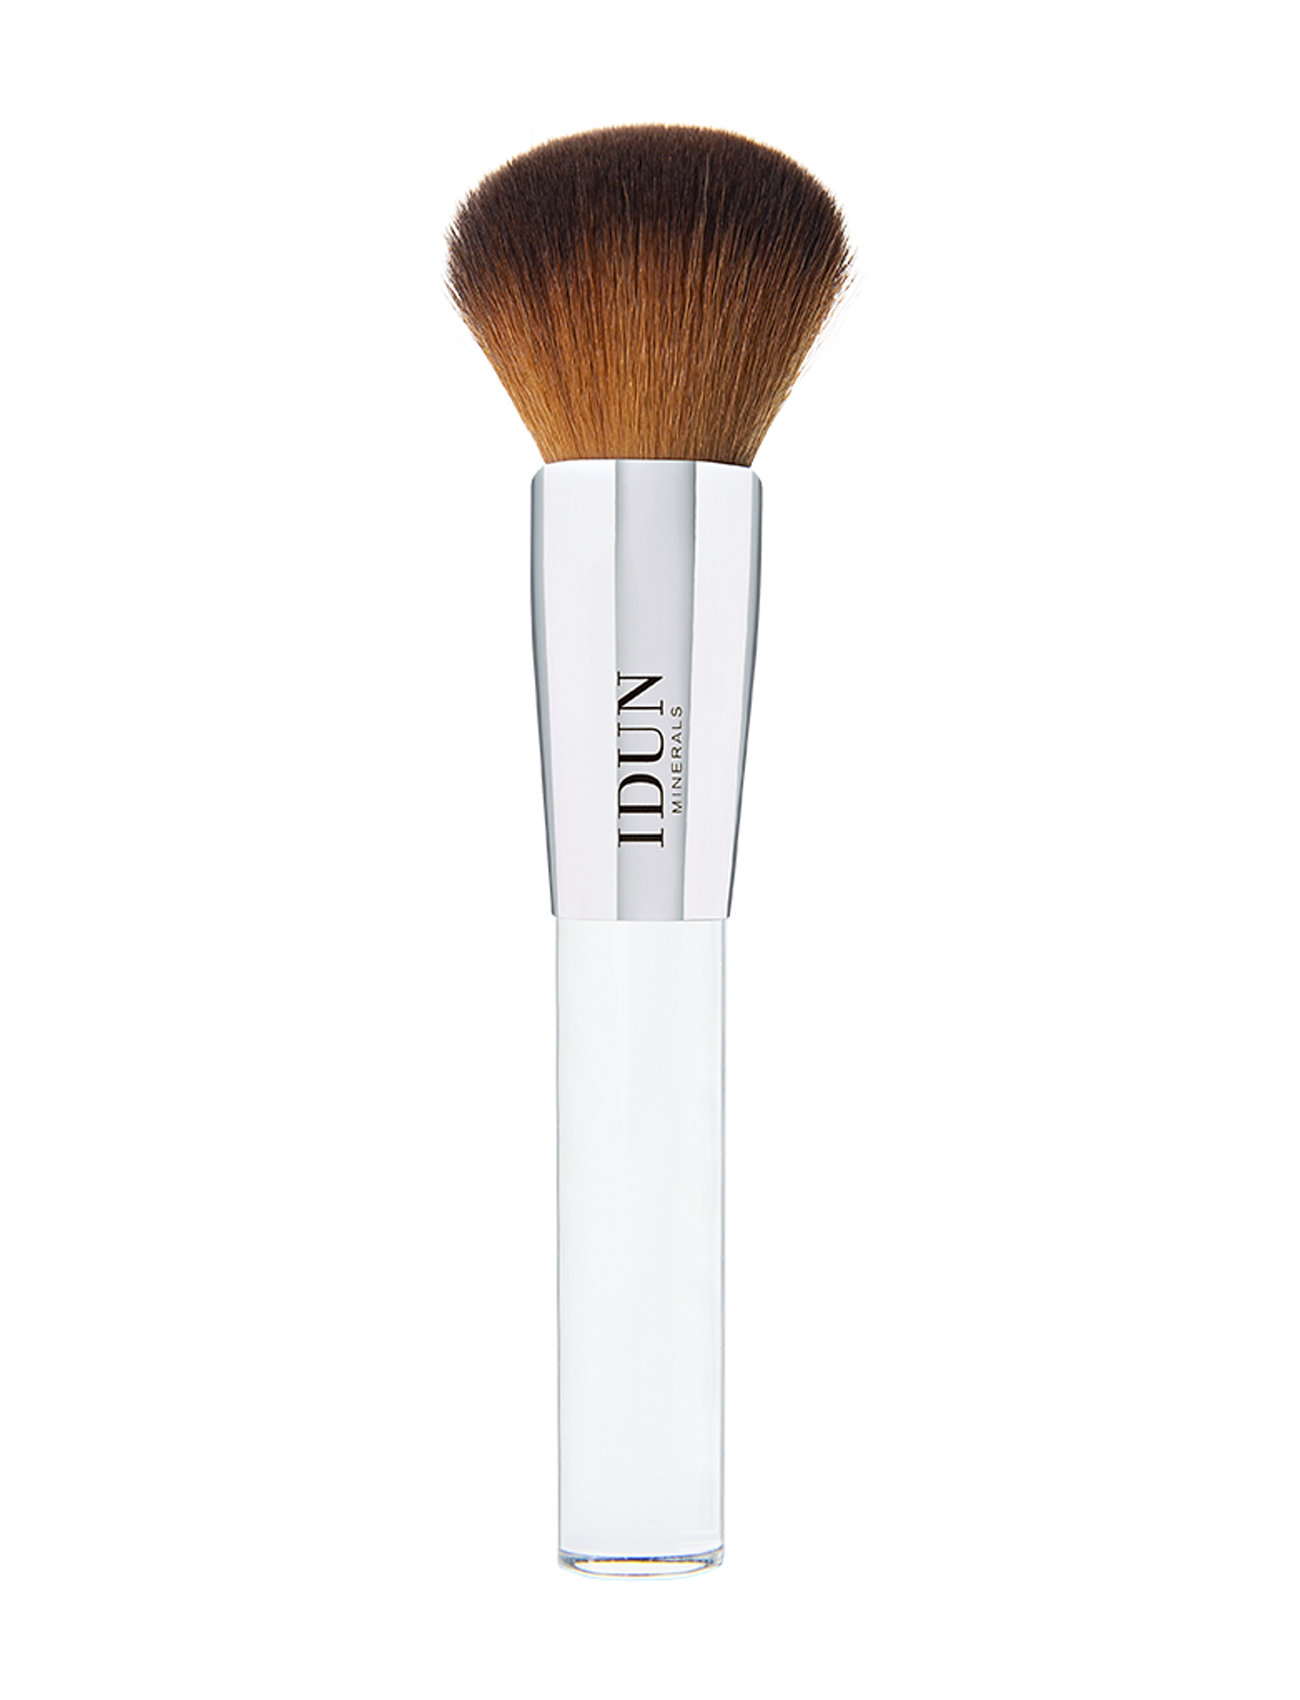 Image of Kabuki Brush Beauty WOMEN Makeup Makeup Brushes Face Brushes Nude IDUN Minerals (3334482245)